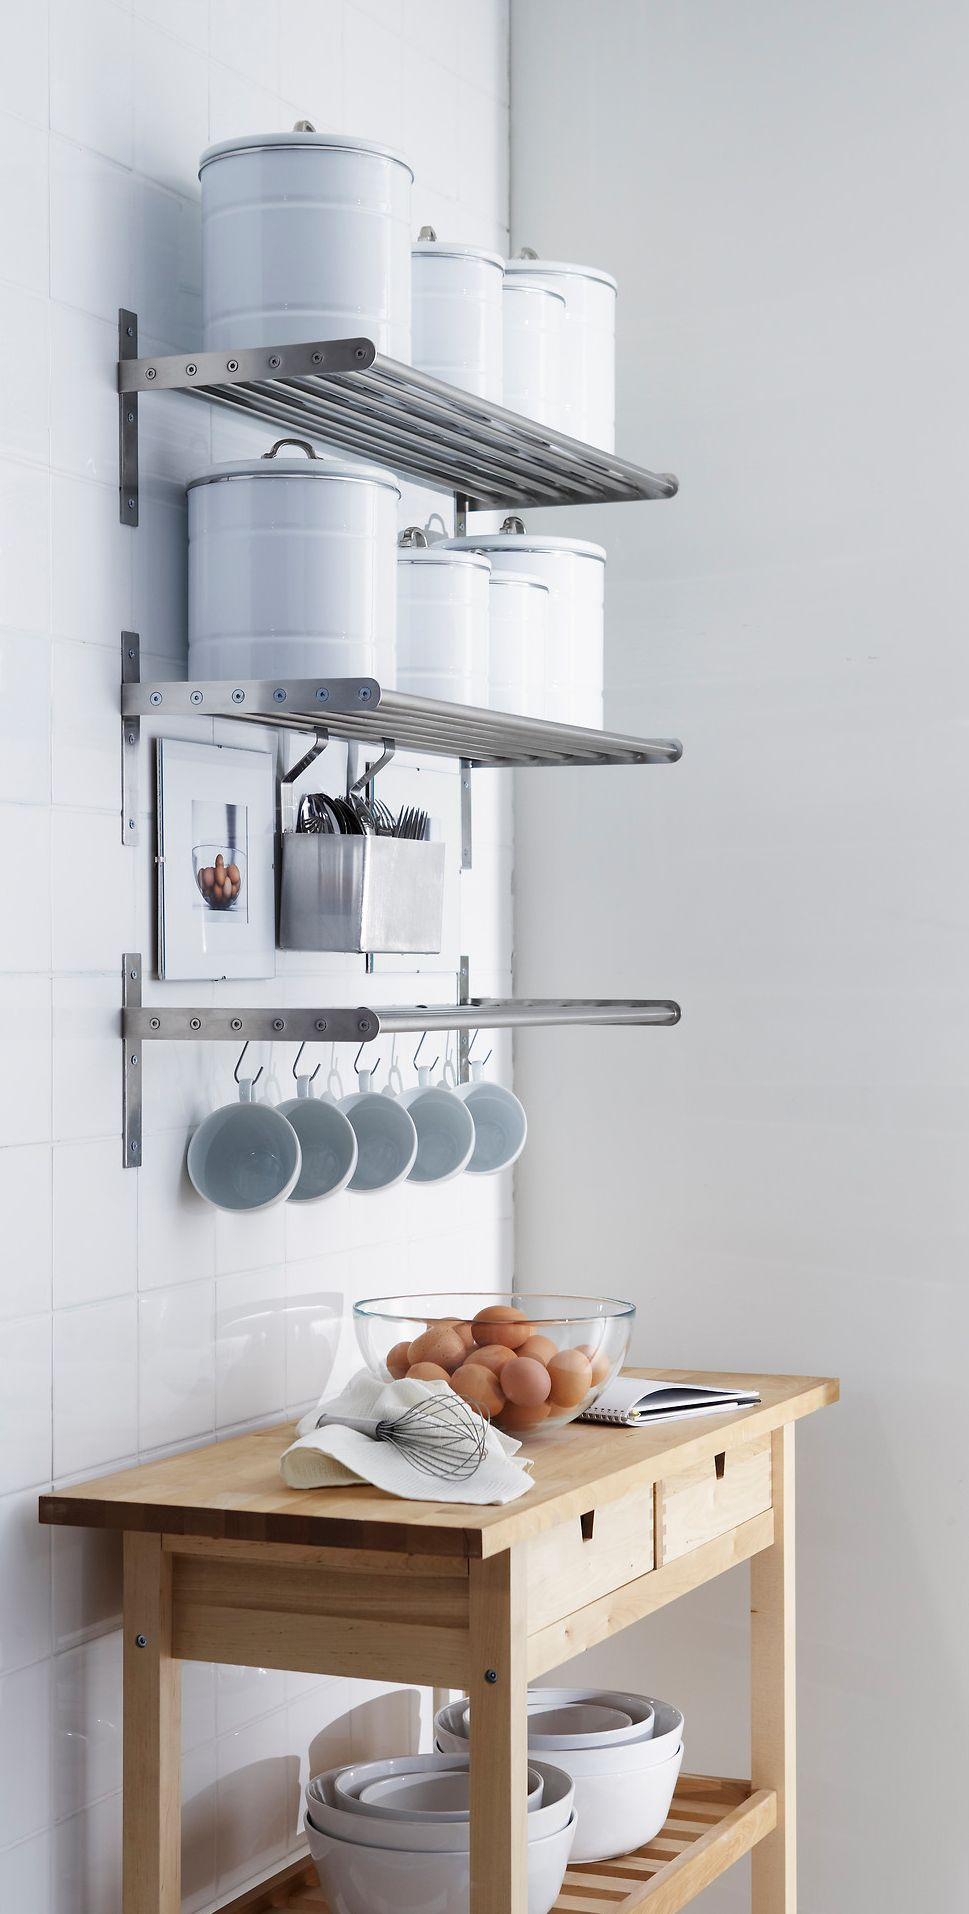 Ingenious Kitchen Organization Tips And Storage Ideas